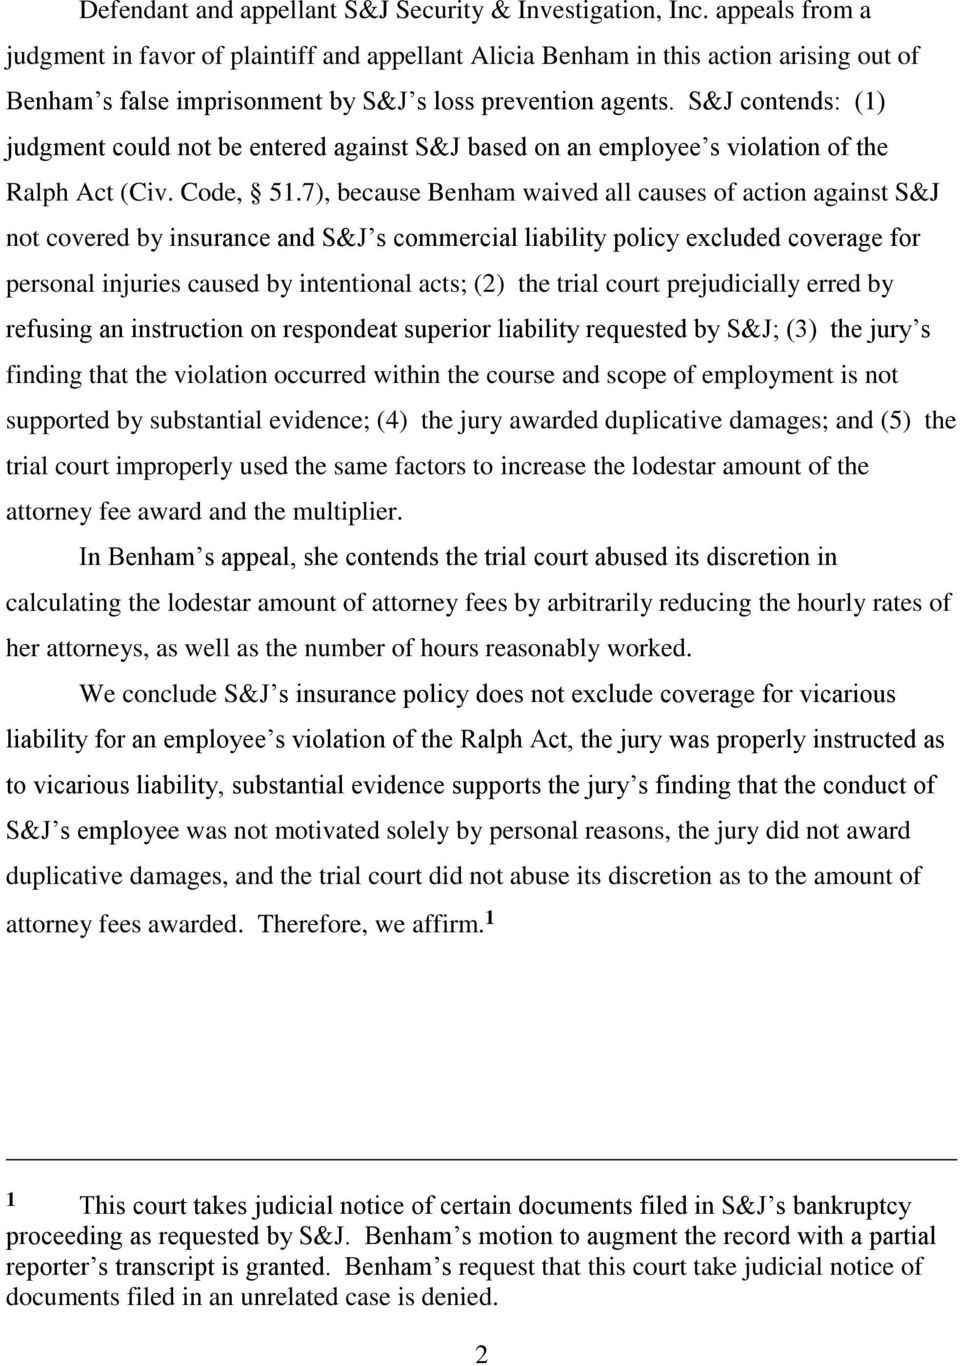 S&J contends: (1) judgment could not be entered against S&J based on an employee s violation of the Ralph Act (Civ. Code, 51.